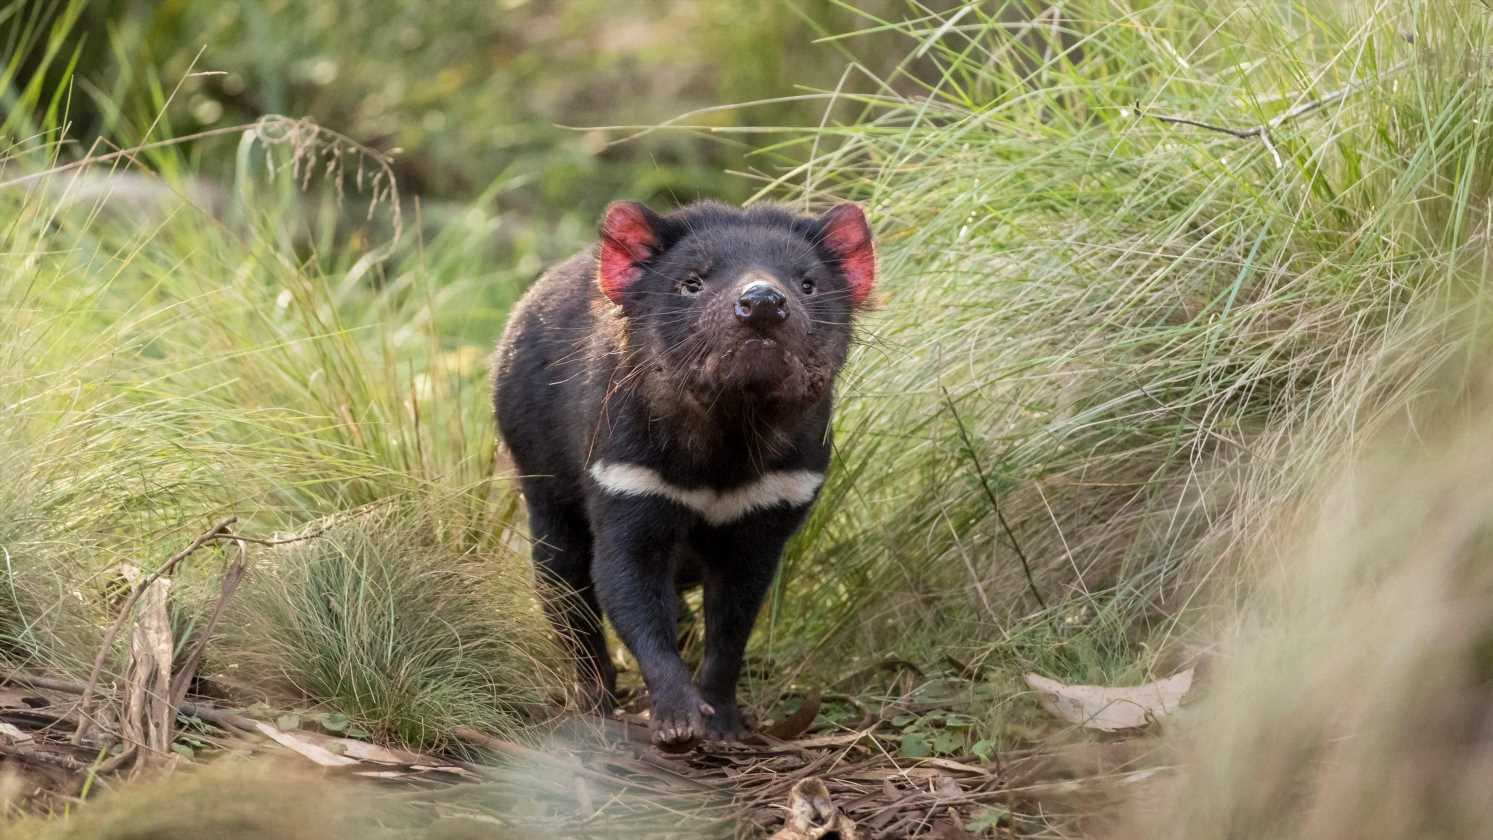 'A special kind of baby boom': Tasmanian devils born in mainland Australia for first time in 3,000 years